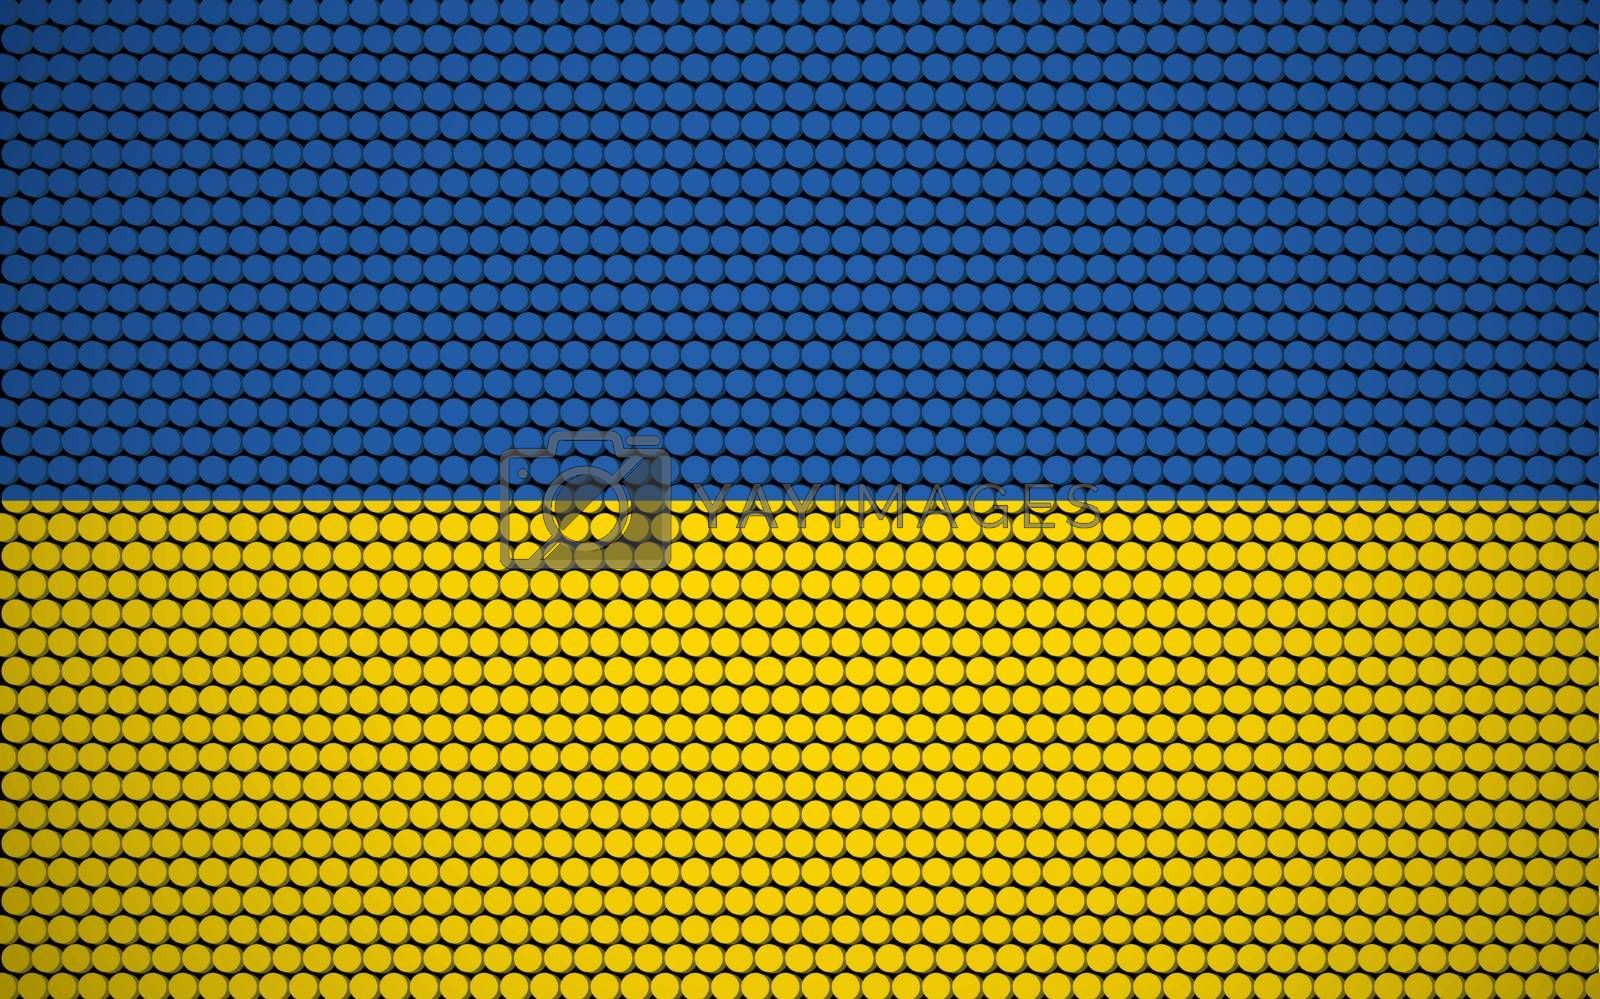 Abstract flag of Ukraine made of circles. Ukrainian flag designed with colored dots giving it a modern and futuristic abstract look.